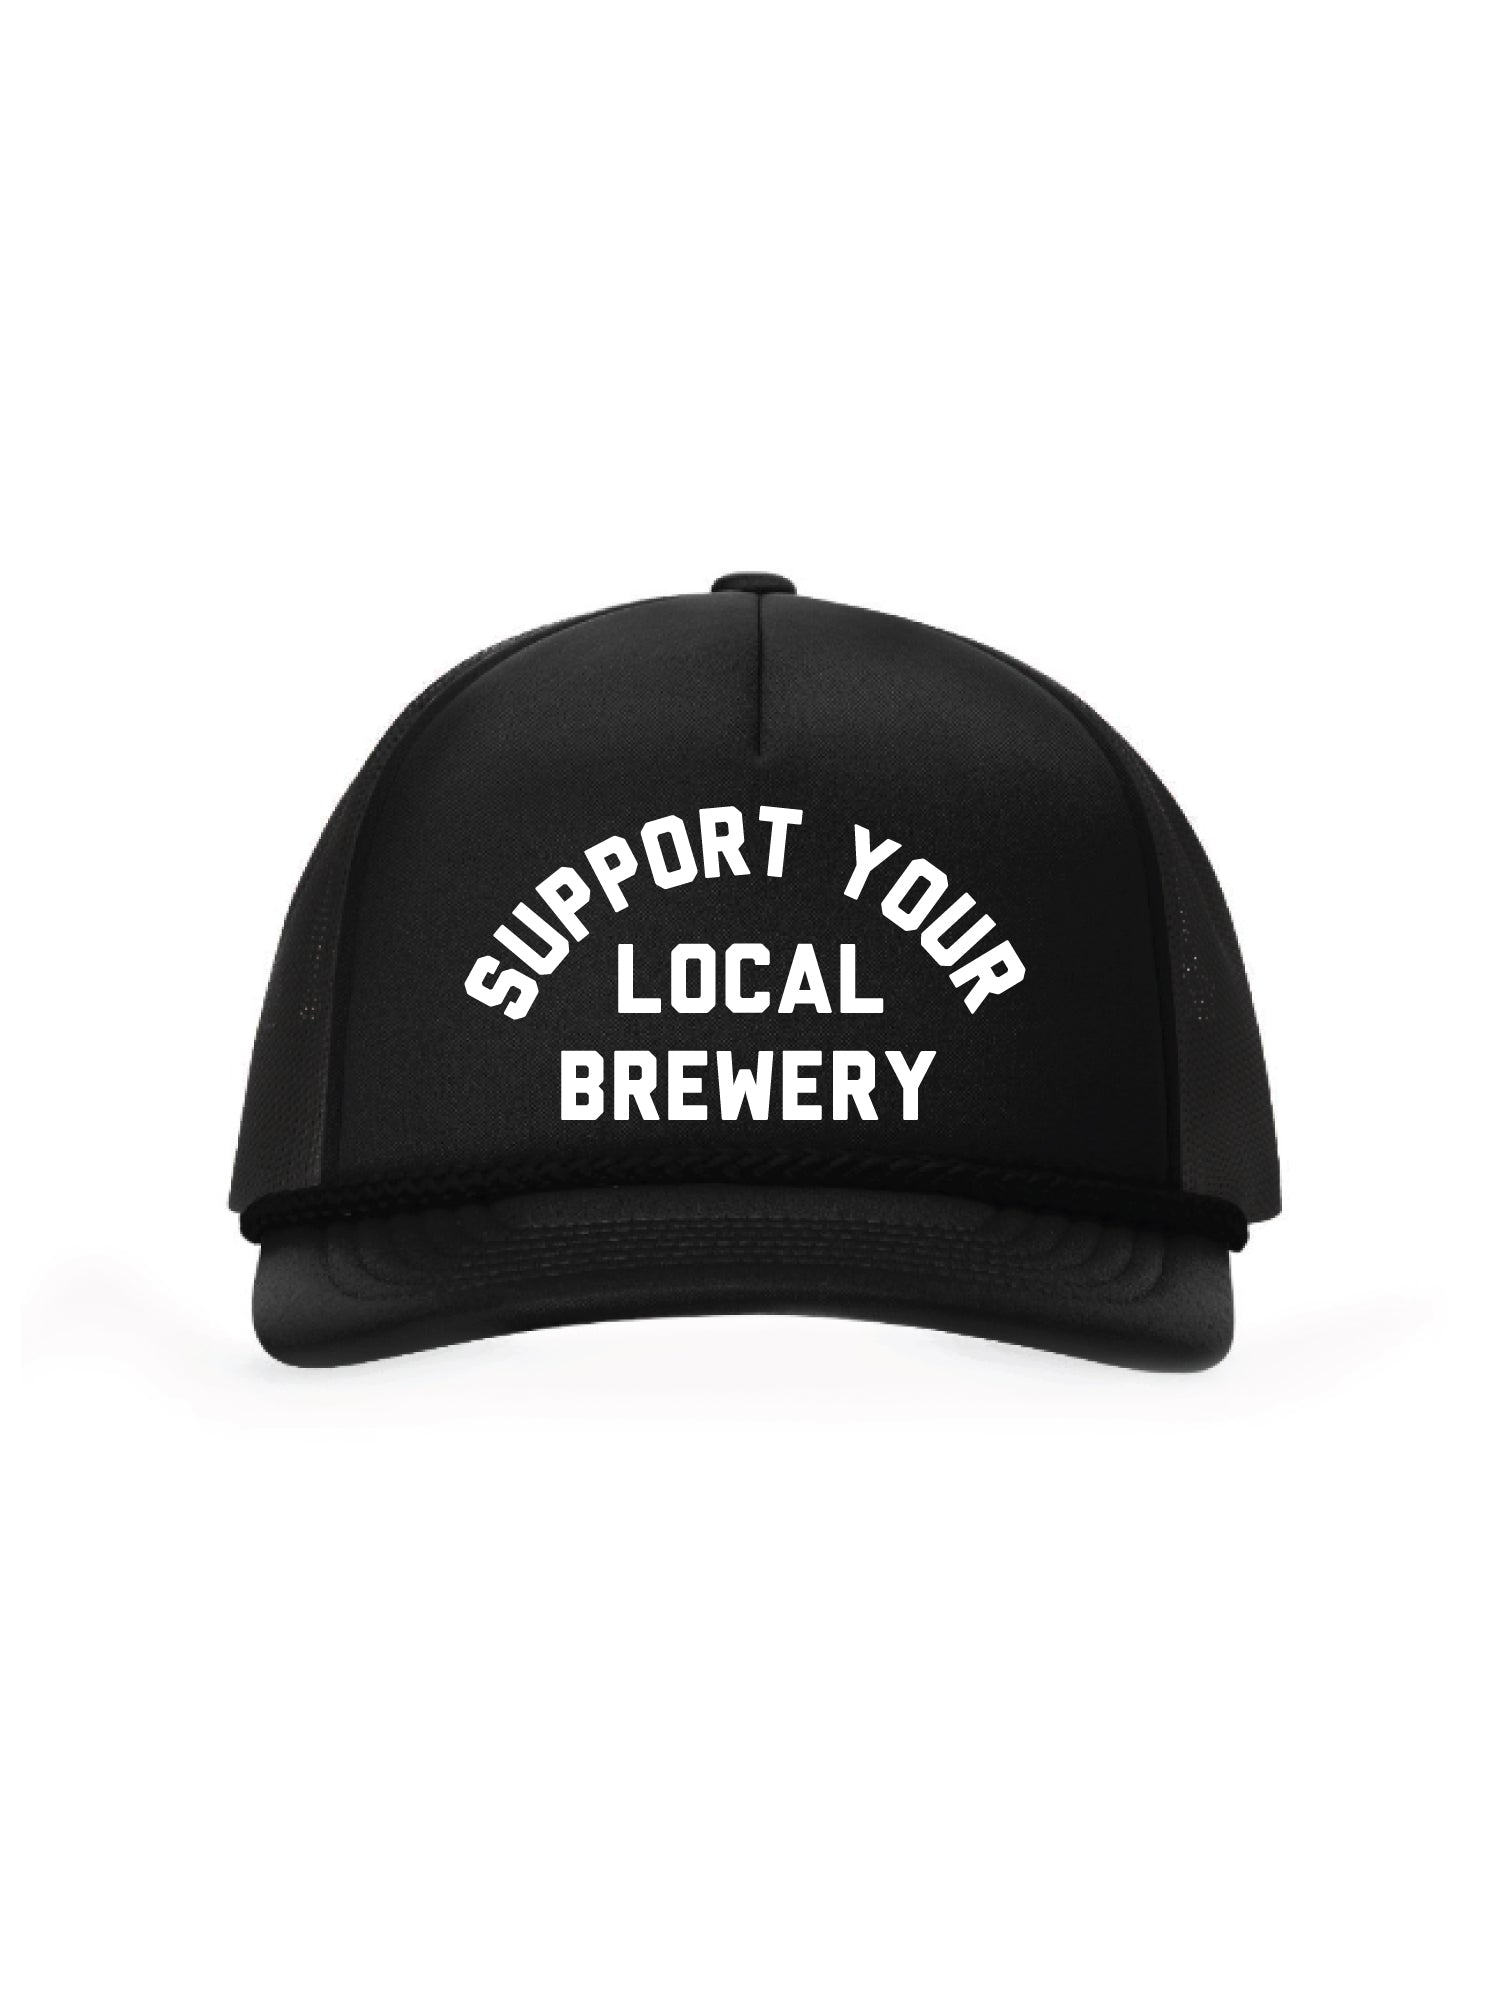 SUPPORT YOUR LOCAL BREWERY FOAM TRUCKER HAT - Tankfarm & Co.